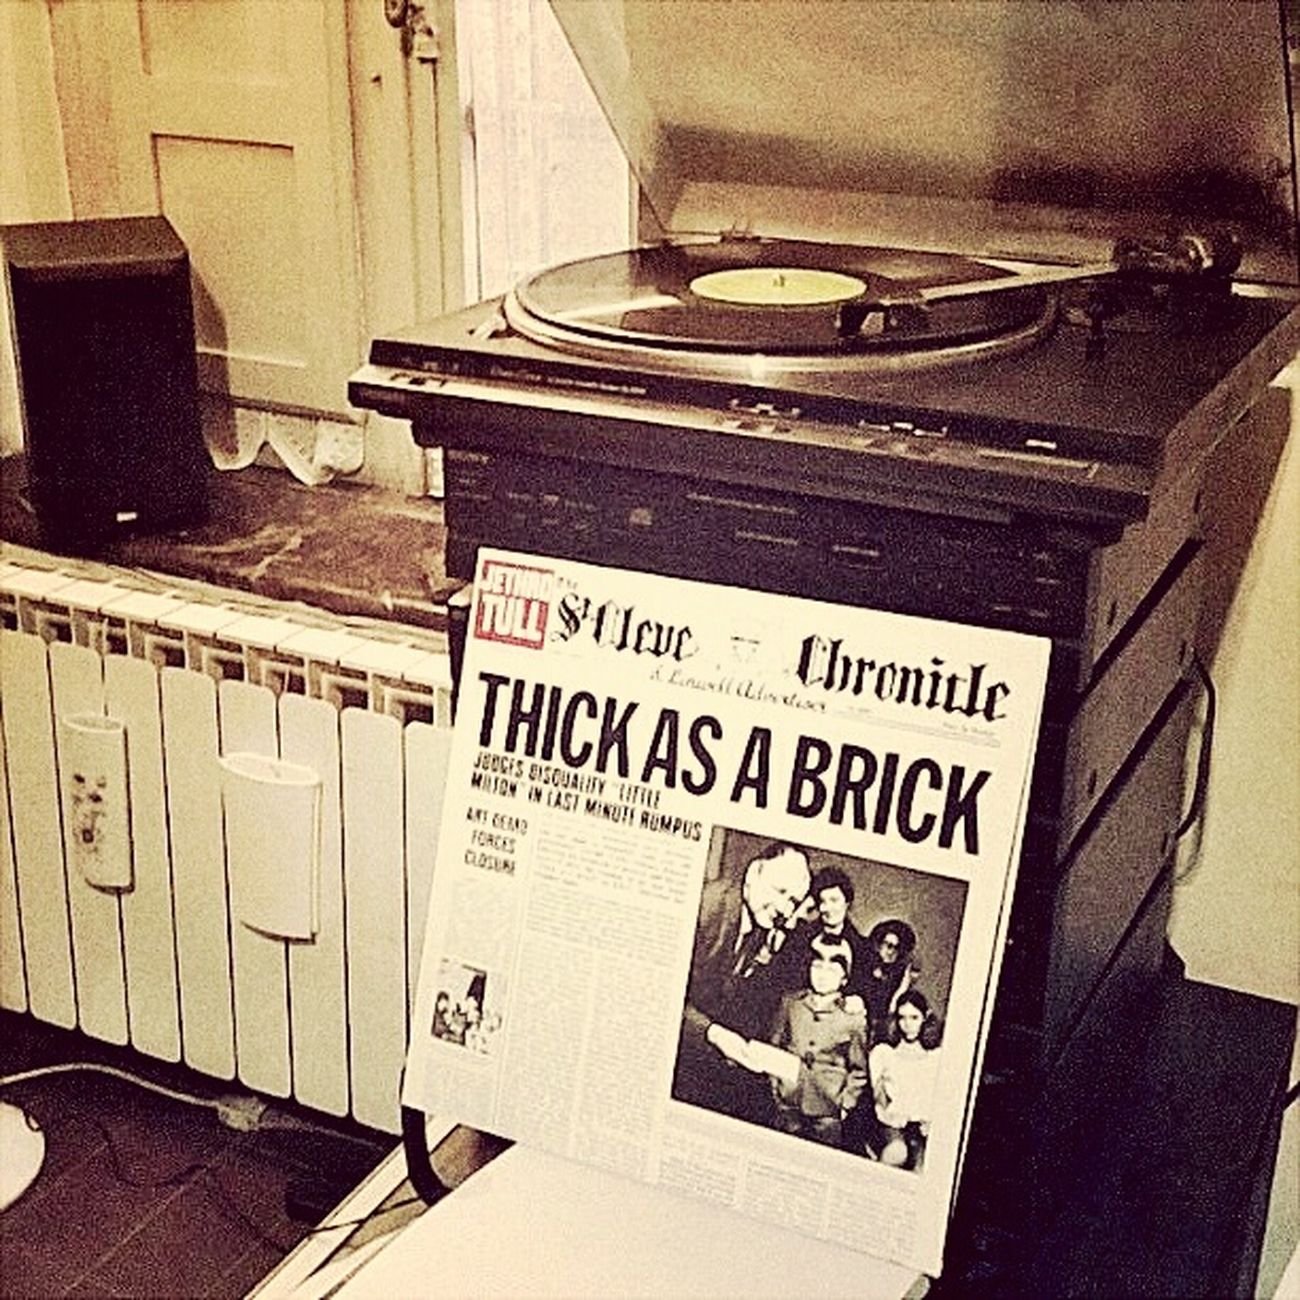 Vinyl Records Vinile Progressive Rock Jethro Tull Thick As A Brick